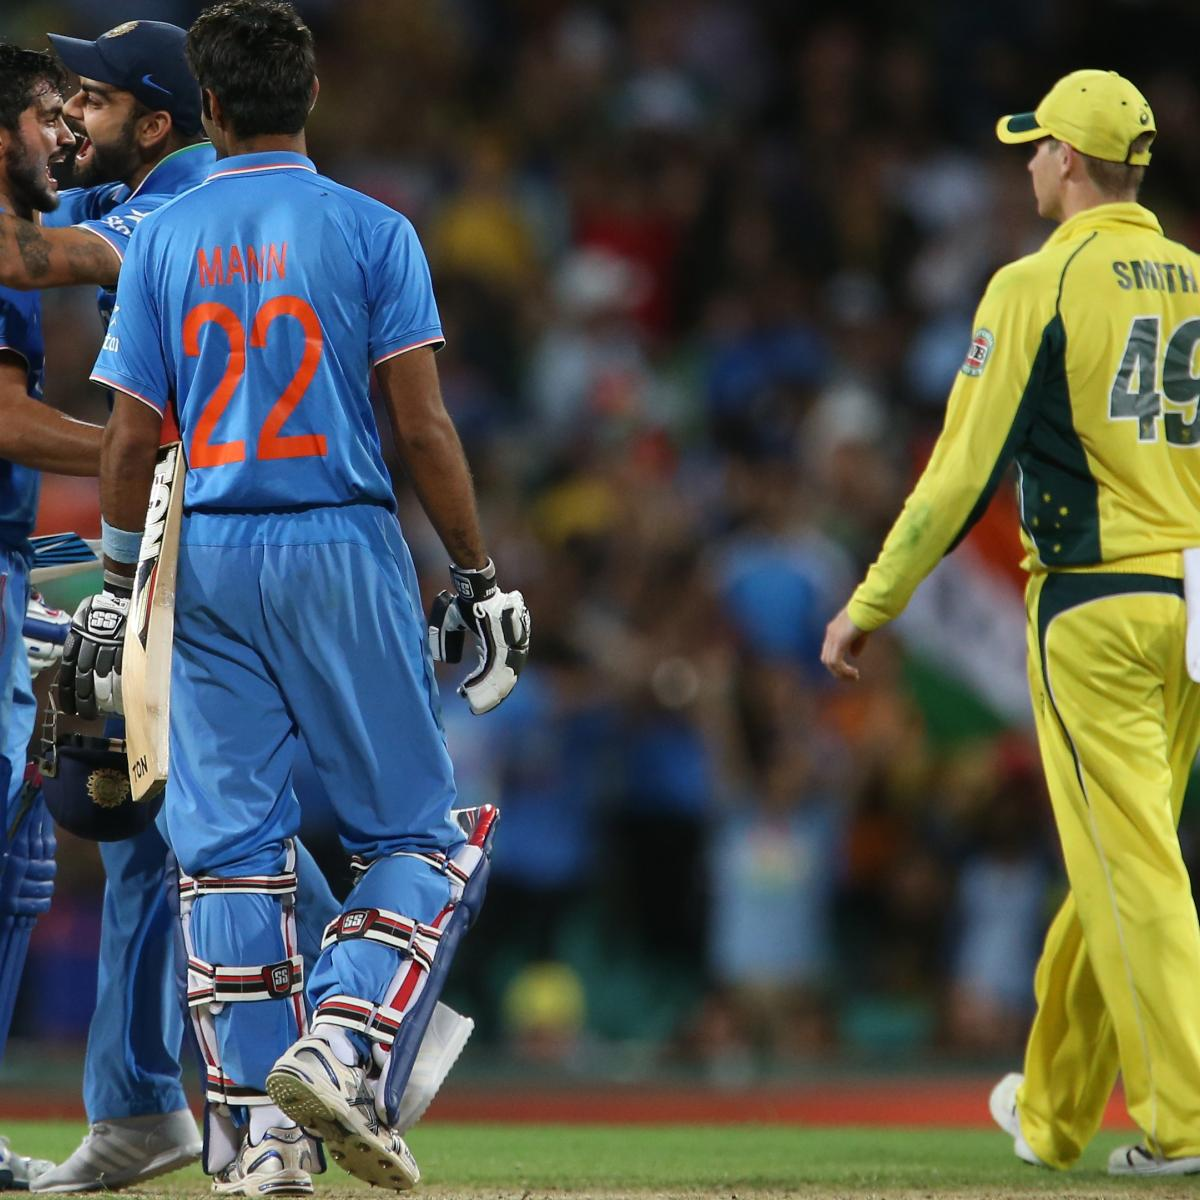 Australia recorded victory by a margin of 4 runs in the first T20I between India and Australia having posted a total of 158 runs within the allotted 17